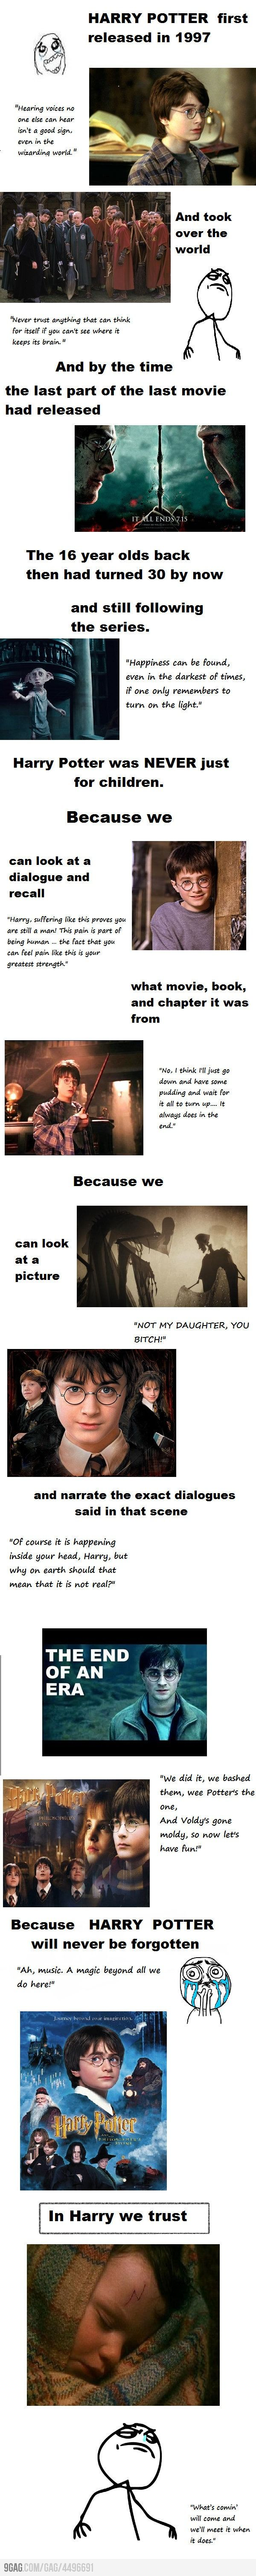 .: Books, Hogwarts, Heart, Geek Nerdy, Quote, Movie, Harry Potter, Childhood, Potter Generation